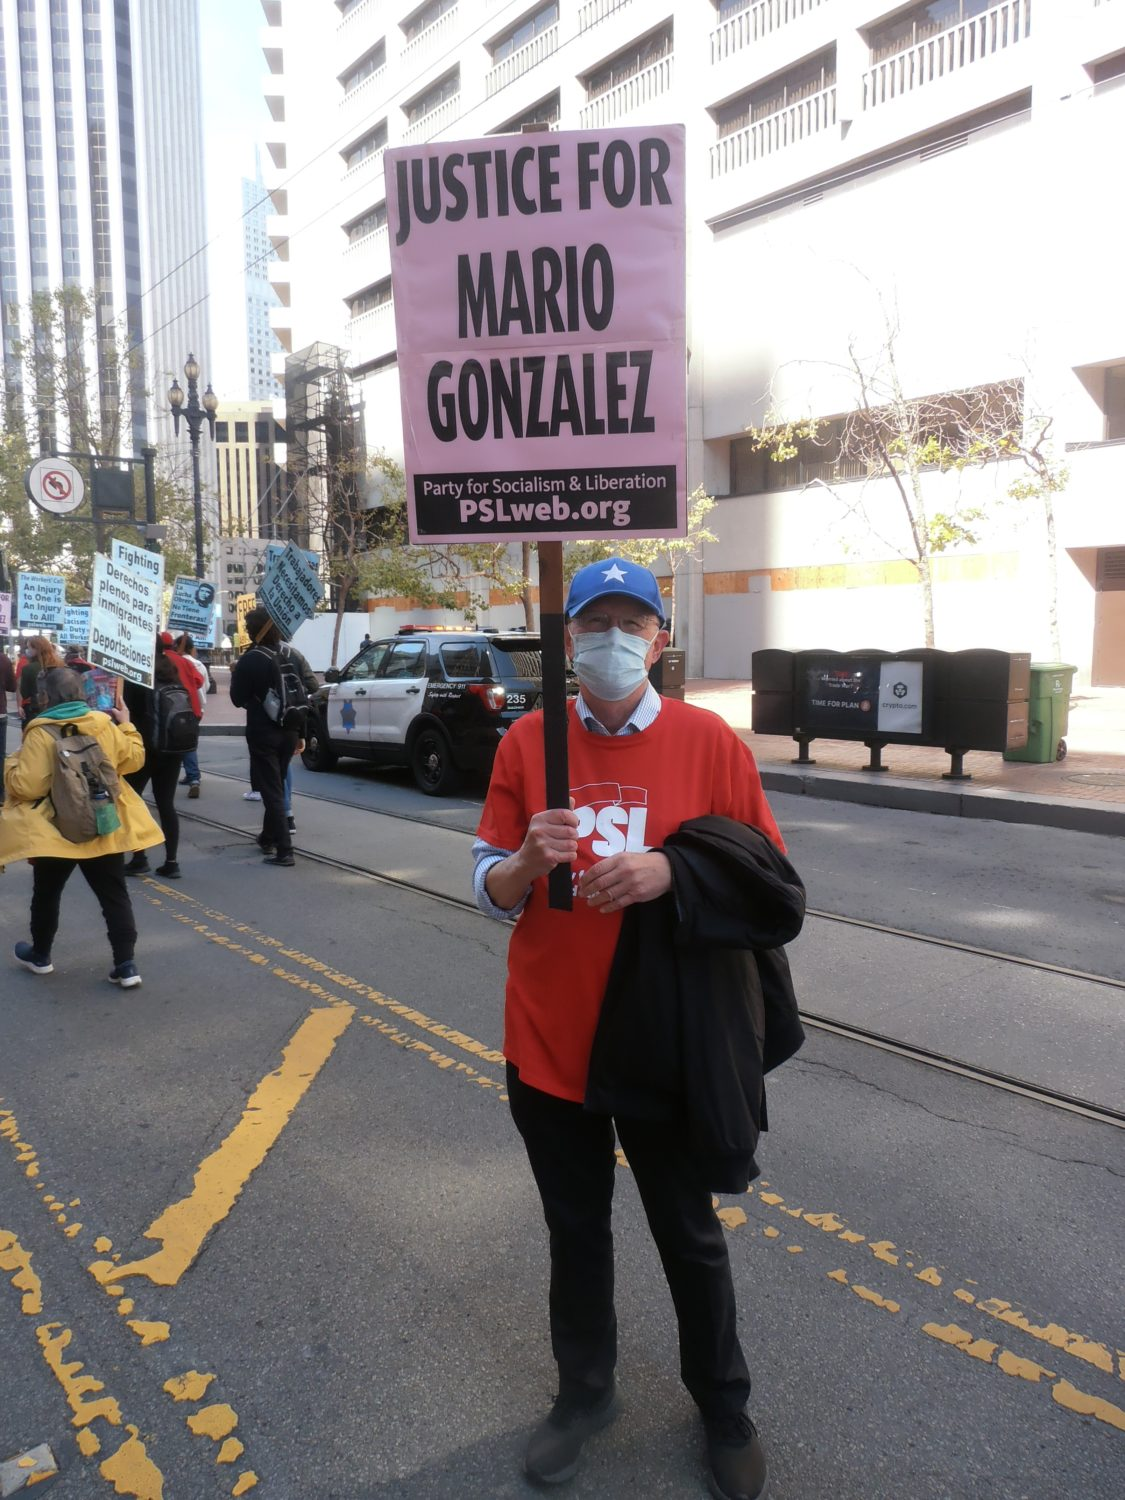 Richard-Becker-of-International-ANSWER-and-Party-for-Socialism-and-Liberation-May-Day-Mario-Gonzalez-protest-in-Oakland-050121-by-Jahahara, Reparations are here!, Culture Currents